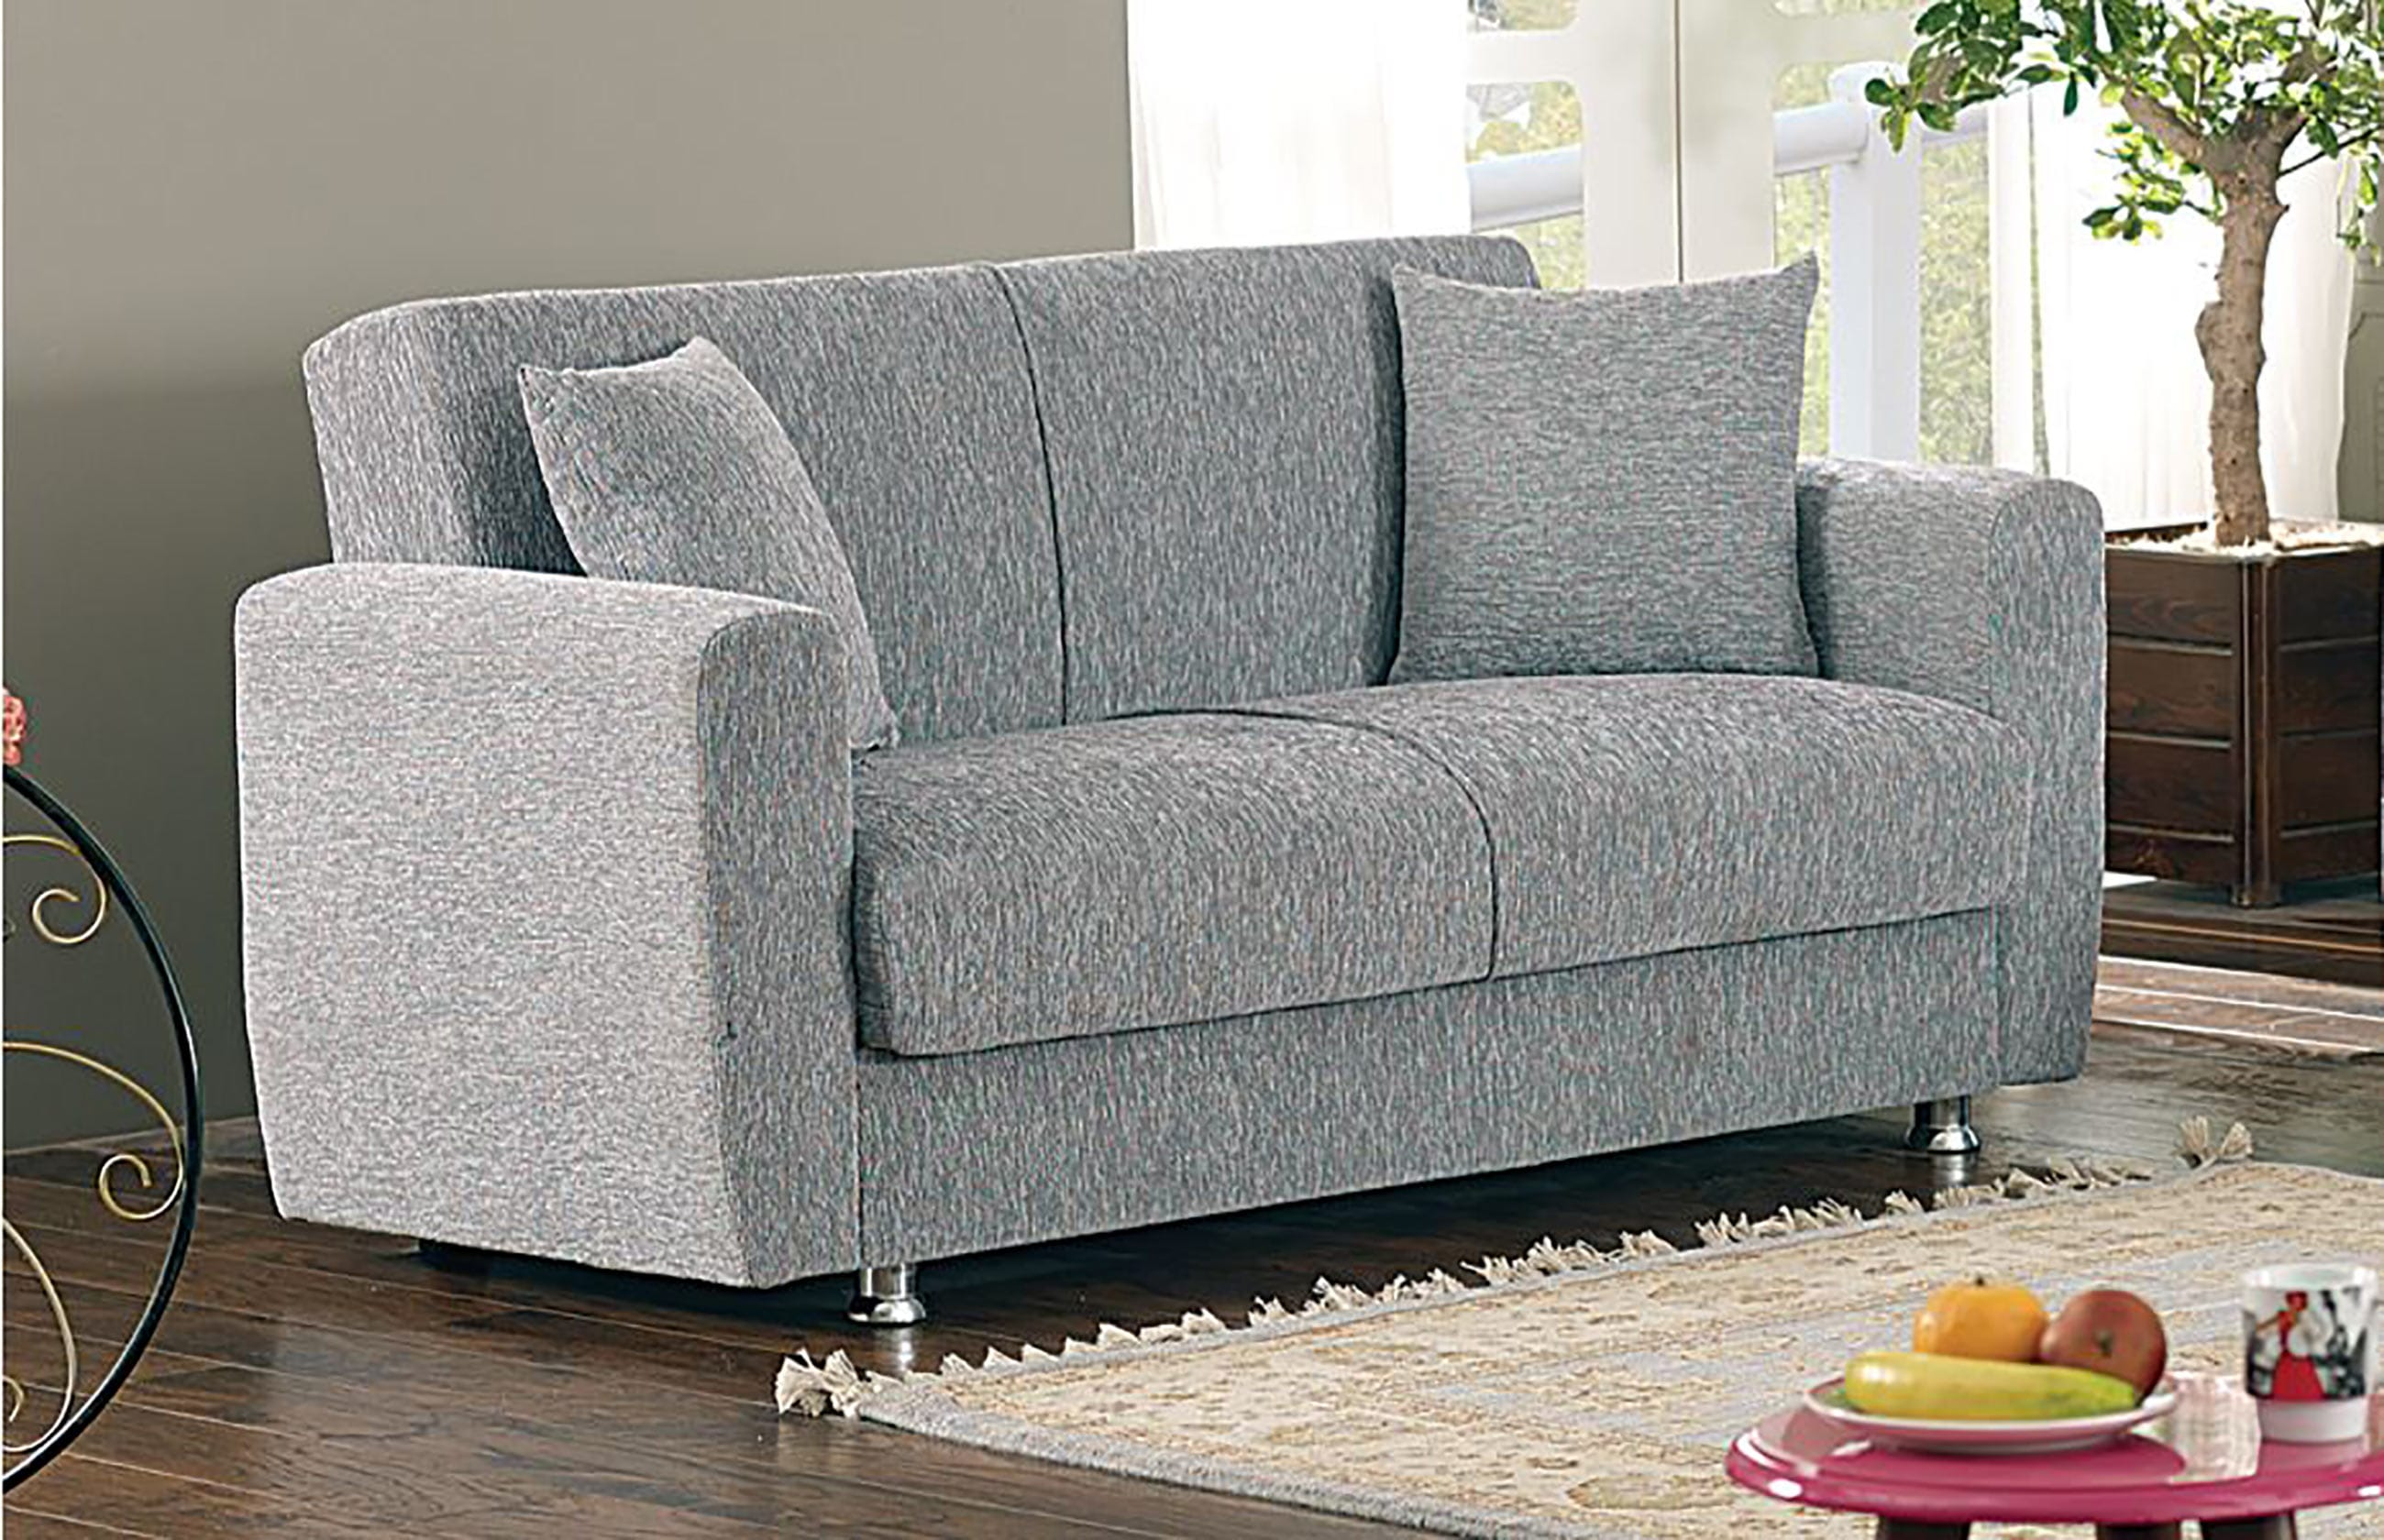 fabric montreal sofa beige loveseat furniture outlet v poundex stone steal a los